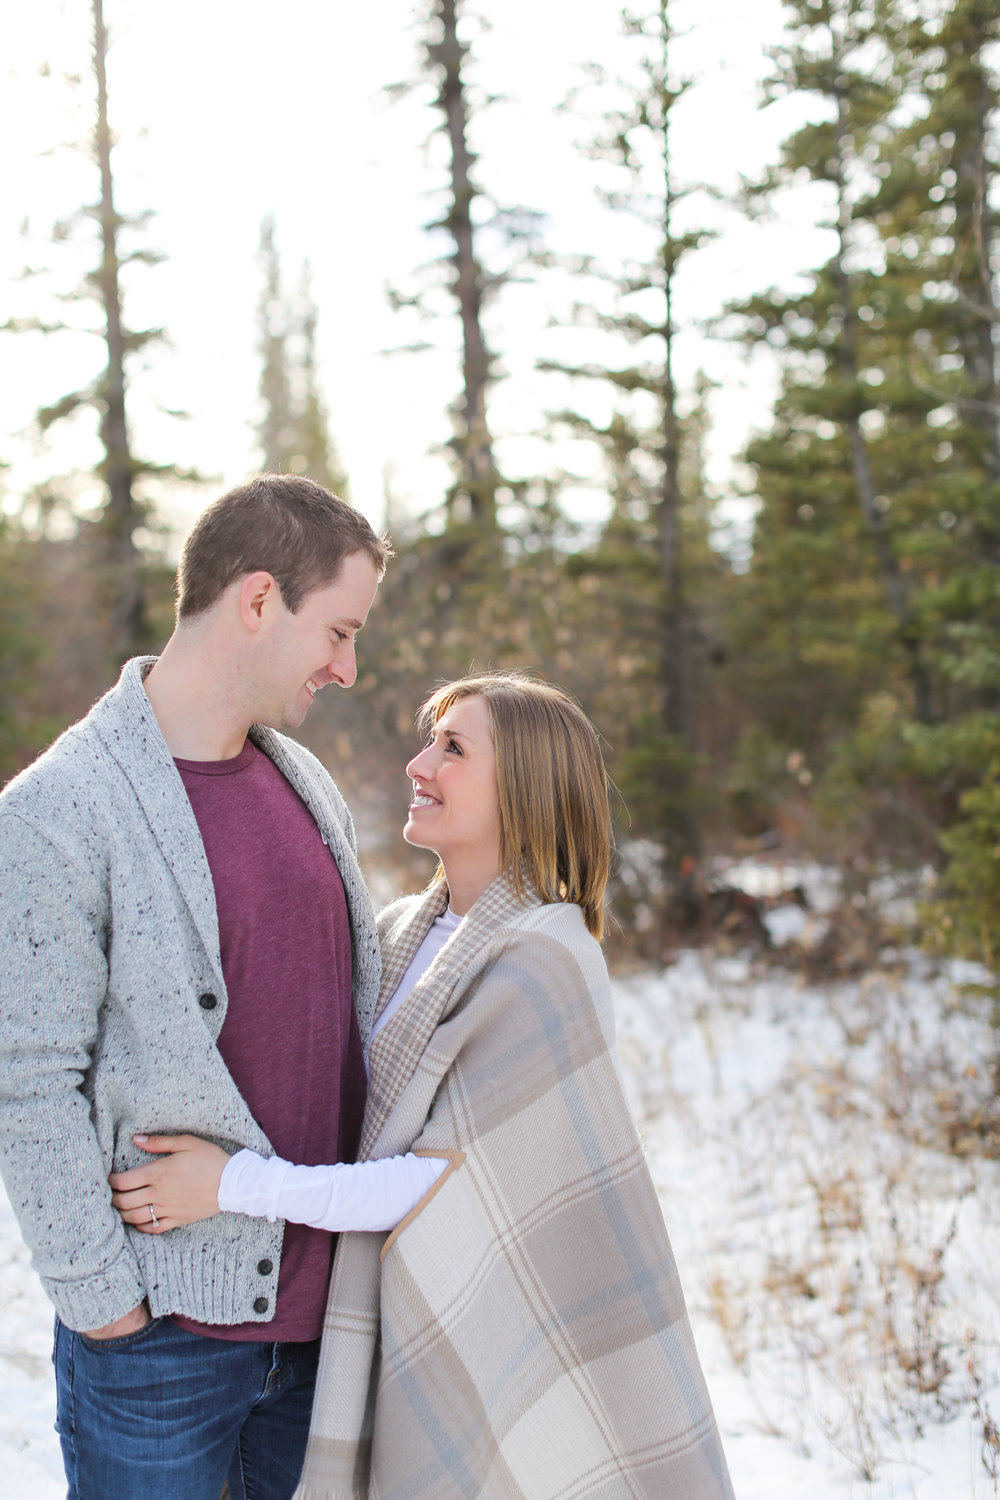 Katie+Chris-Engagement-1.jpg